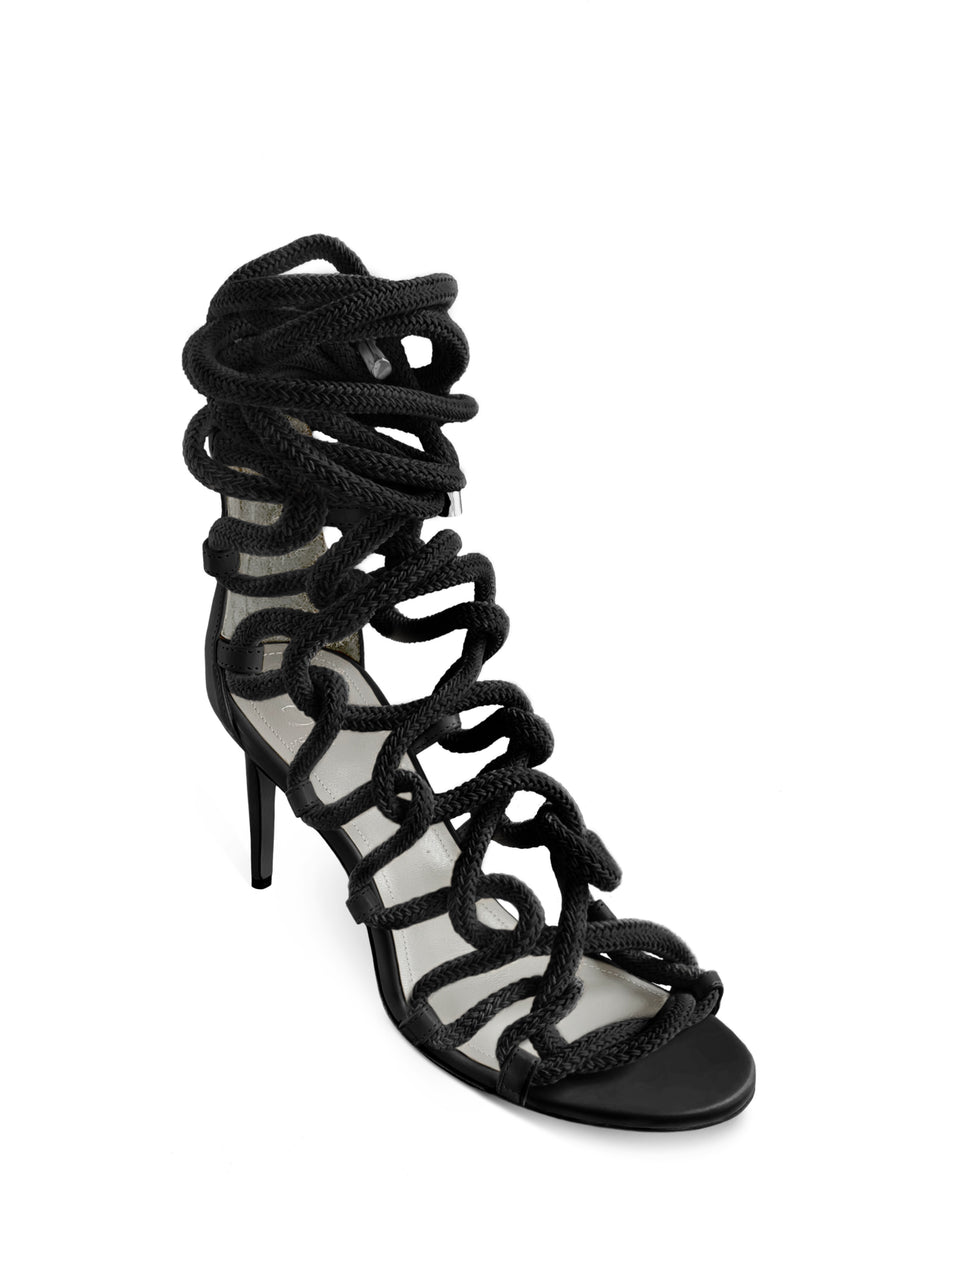 CARLA 80 BLACK CALF & ROPE SANDAL